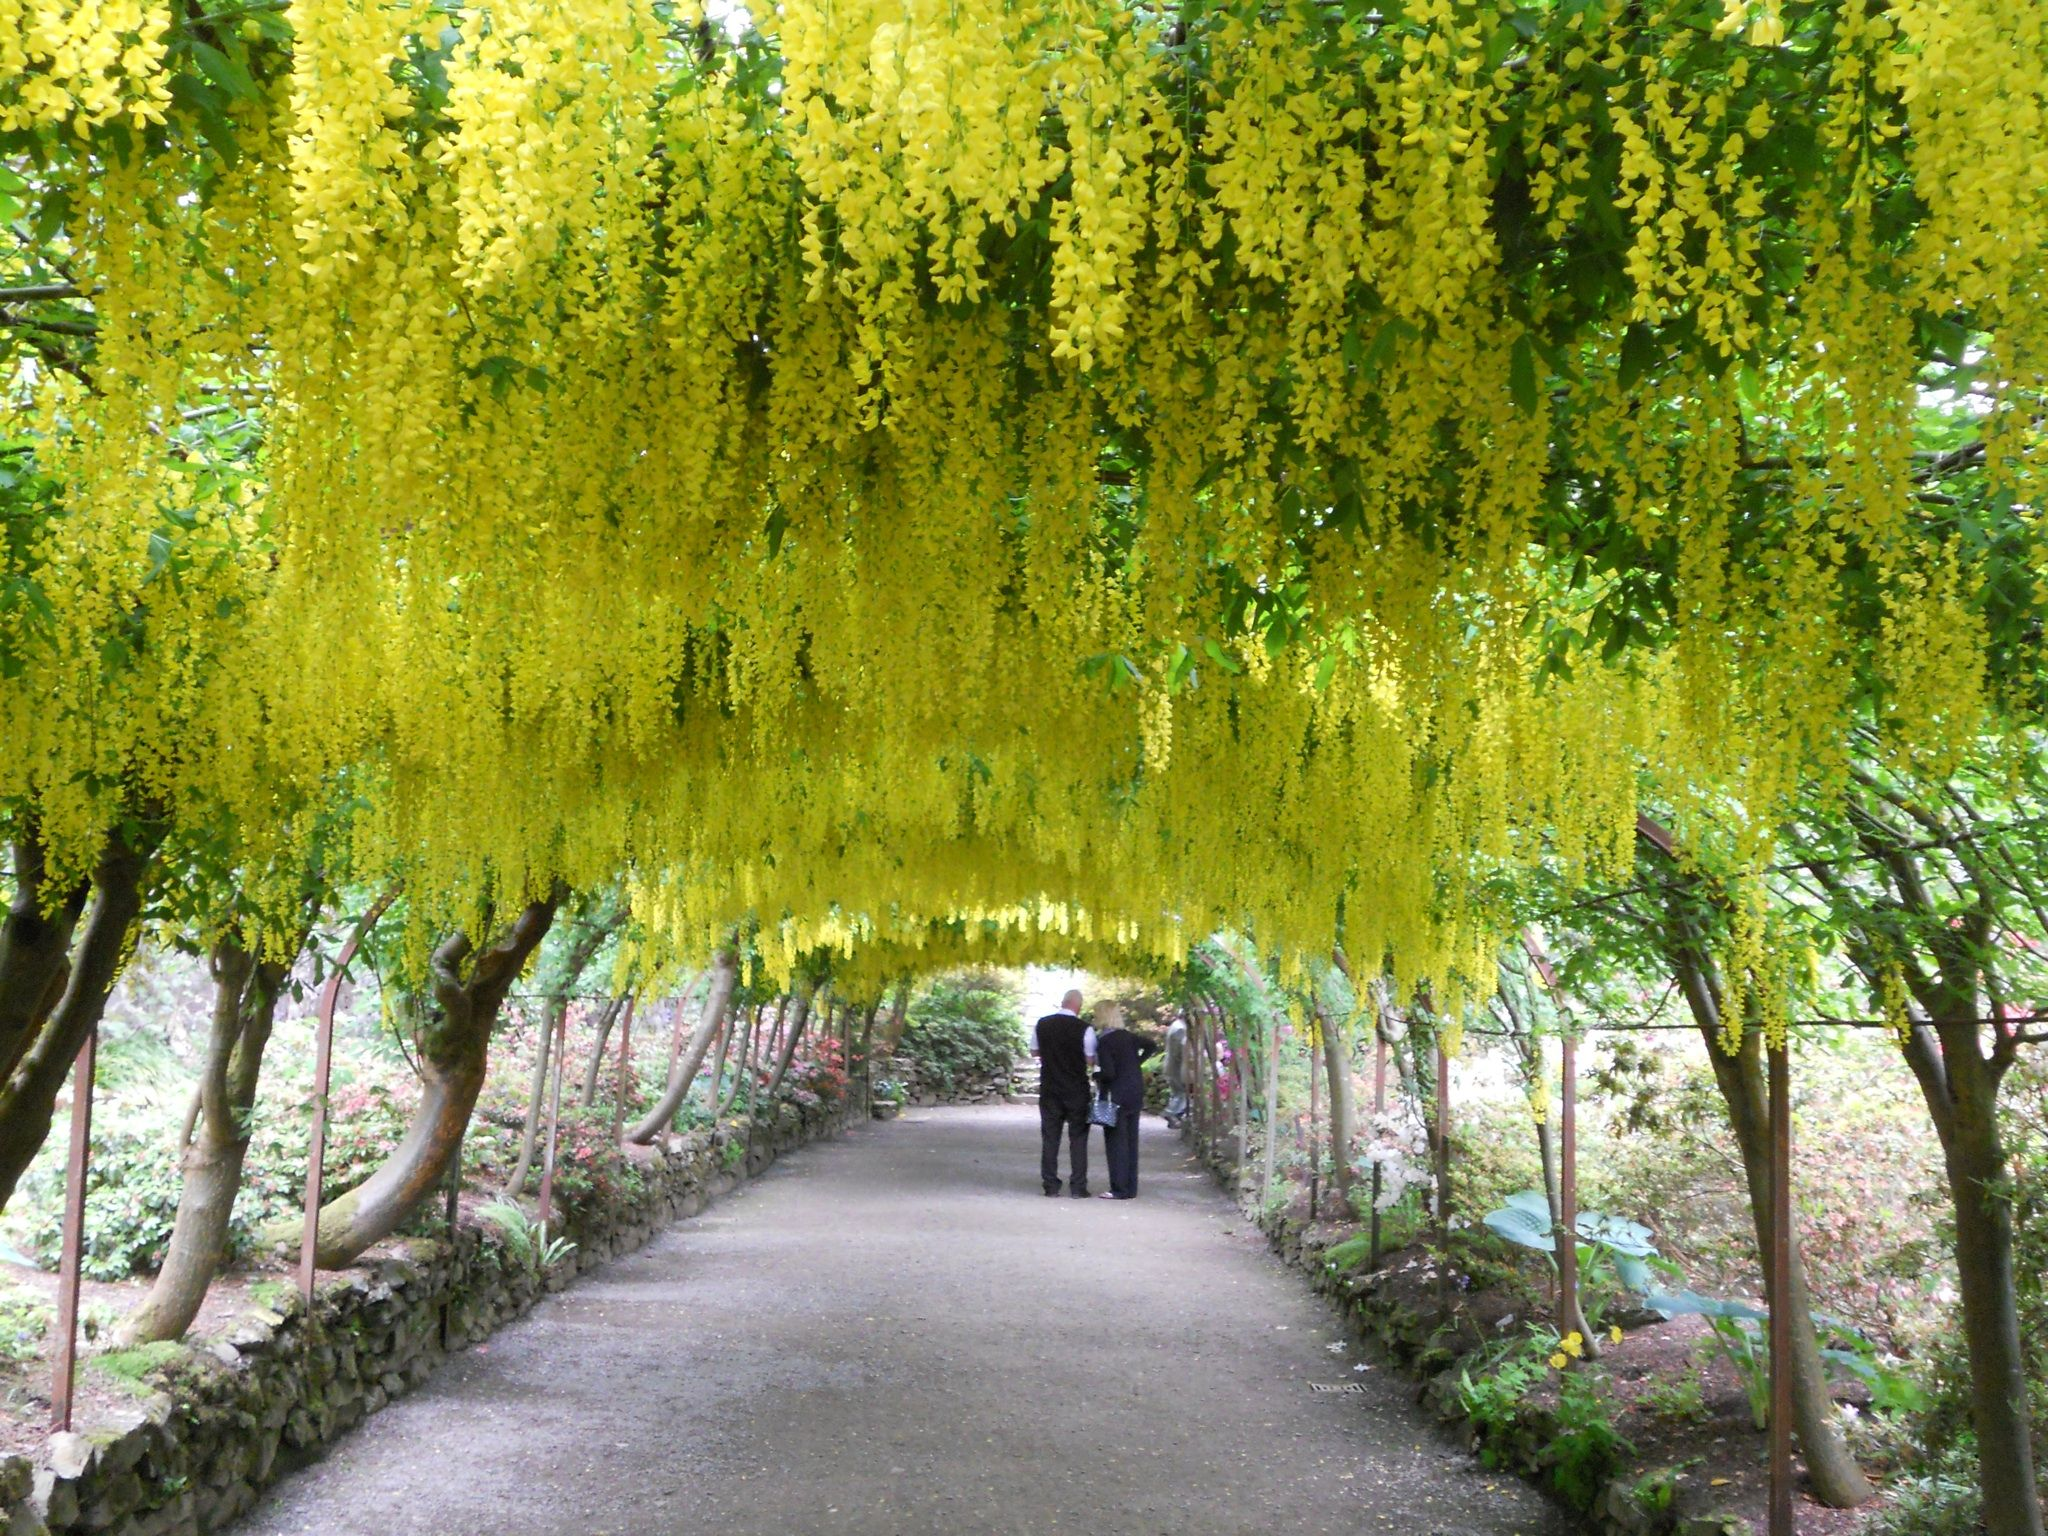 Scenic Laburnum Arch Bodnant Gardens  Garden Stuff  Pinterest  With Outstanding Arches  Laburnum Arch Bodnant Gardens With Endearing Garden Sheds Plastic Uk Also Sunlight Garden Side Turkey In Addition Wwwgardeners World And Garden Urn Planters As Well As Garden Table Plans Additionally Prezzo Covent Garden From Pinterestcom With   Outstanding Laburnum Arch Bodnant Gardens  Garden Stuff  Pinterest  With Endearing Arches  Laburnum Arch Bodnant Gardens And Scenic Garden Sheds Plastic Uk Also Sunlight Garden Side Turkey In Addition Wwwgardeners World From Pinterestcom